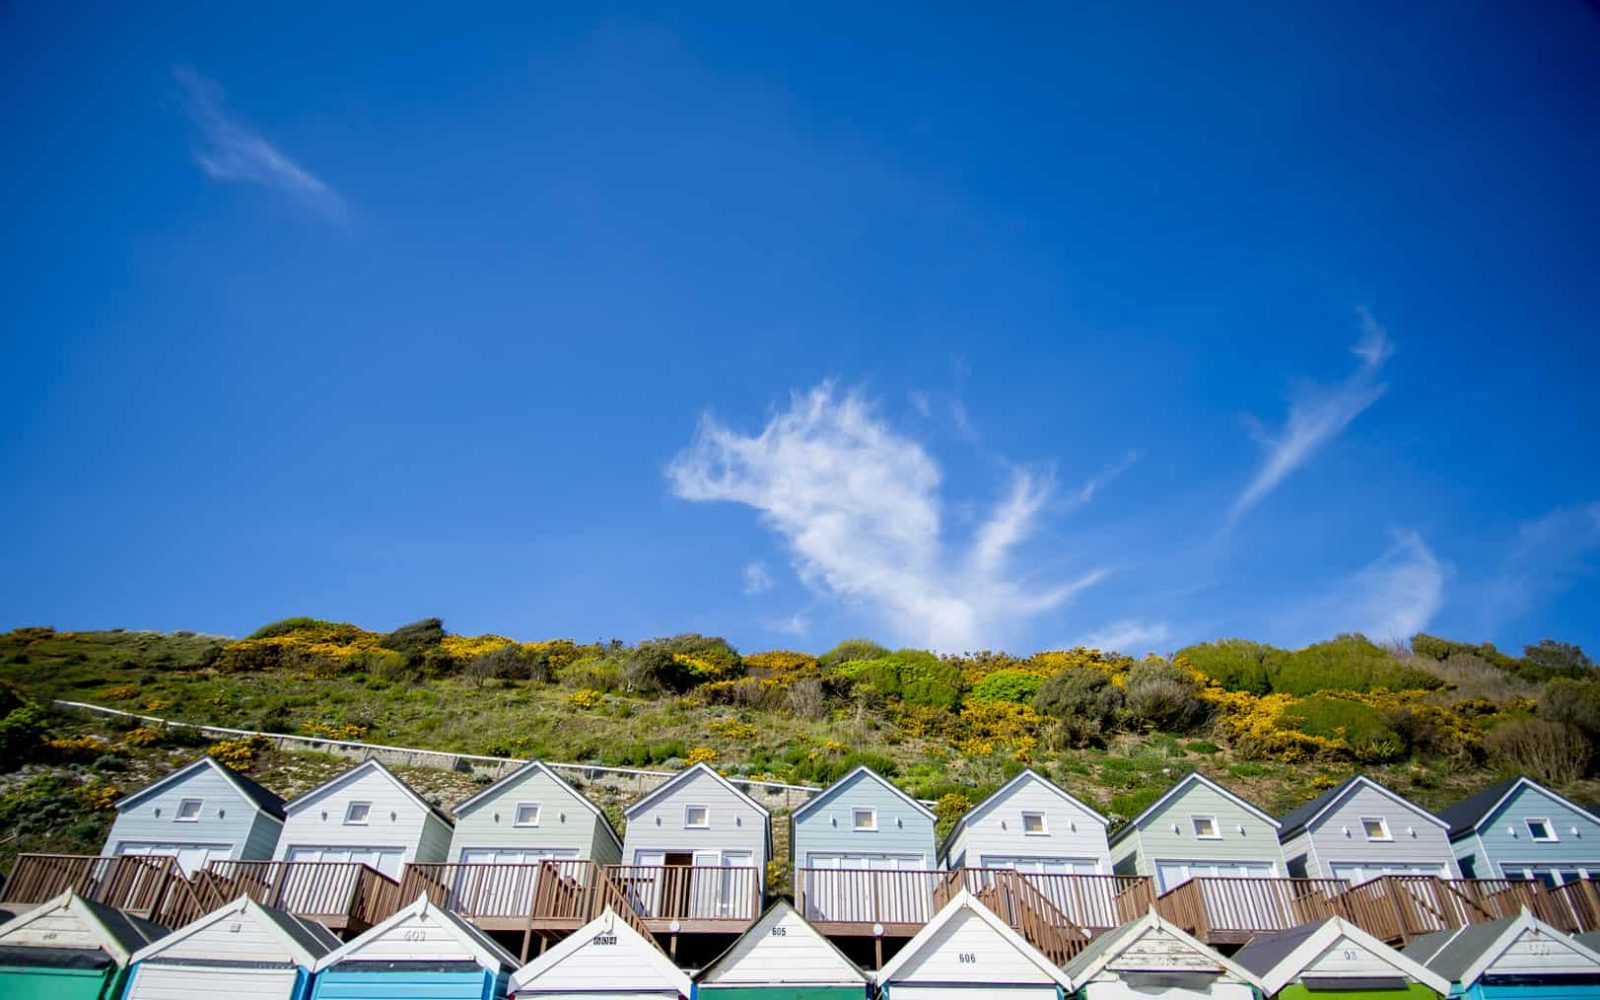 Stunning low angle shot of the Beach lodges on a clear sunny day